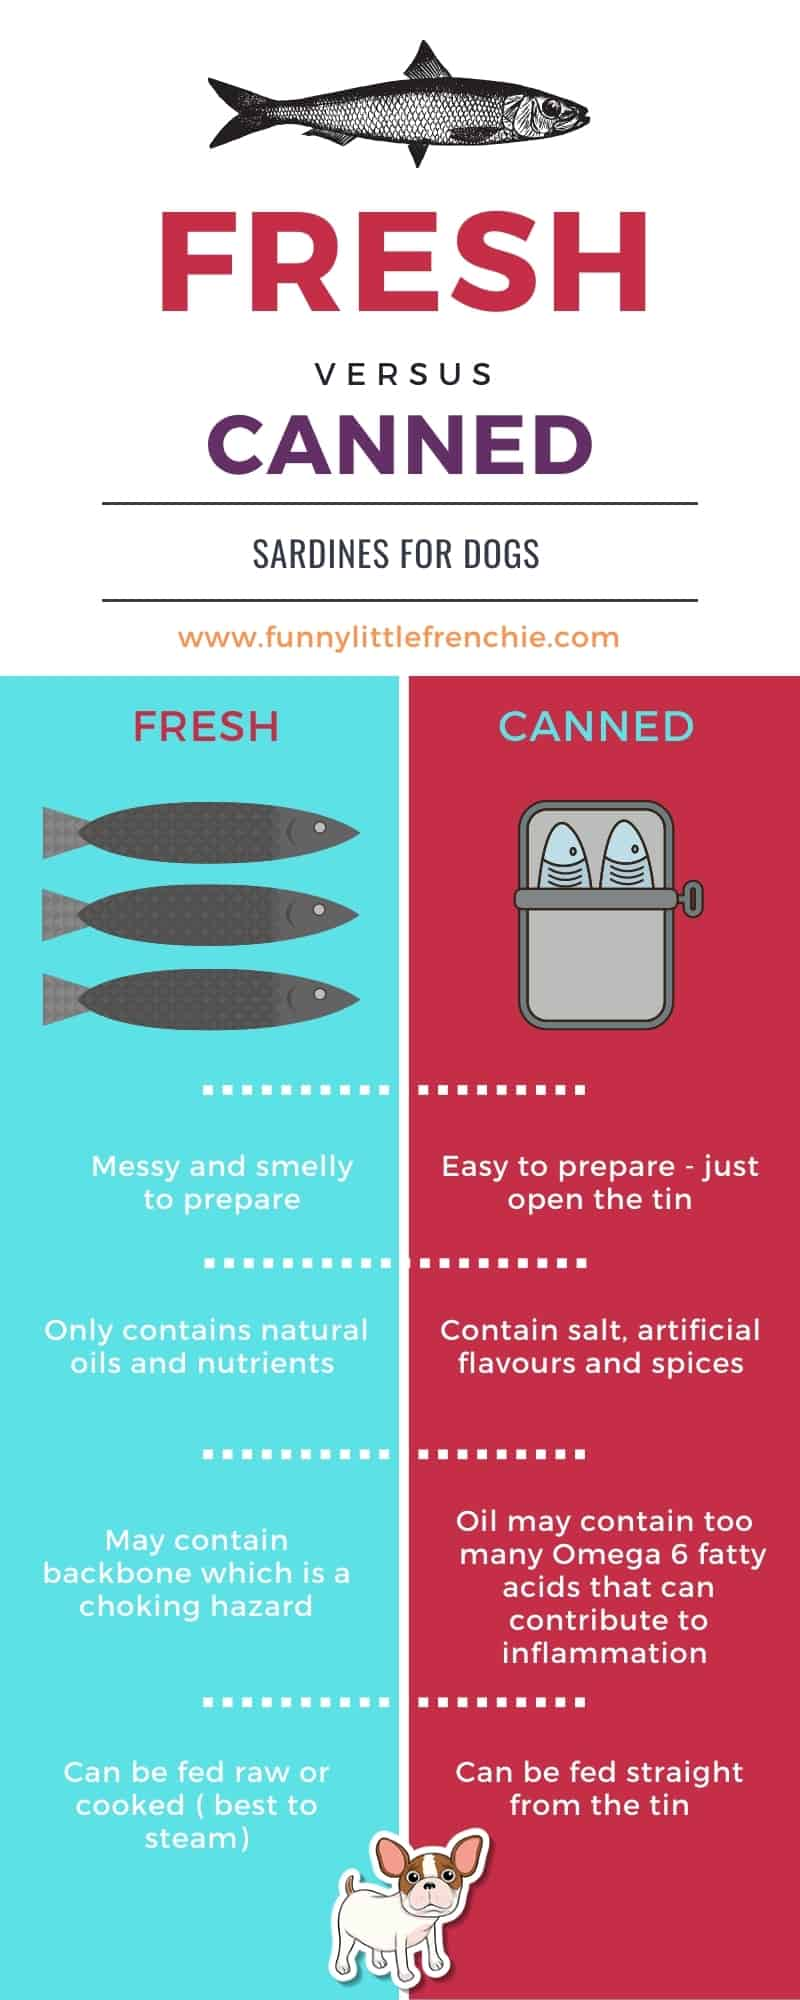 Fresh Vs Canned Sardines for Dogs Infographic from Funny Little Frenchie